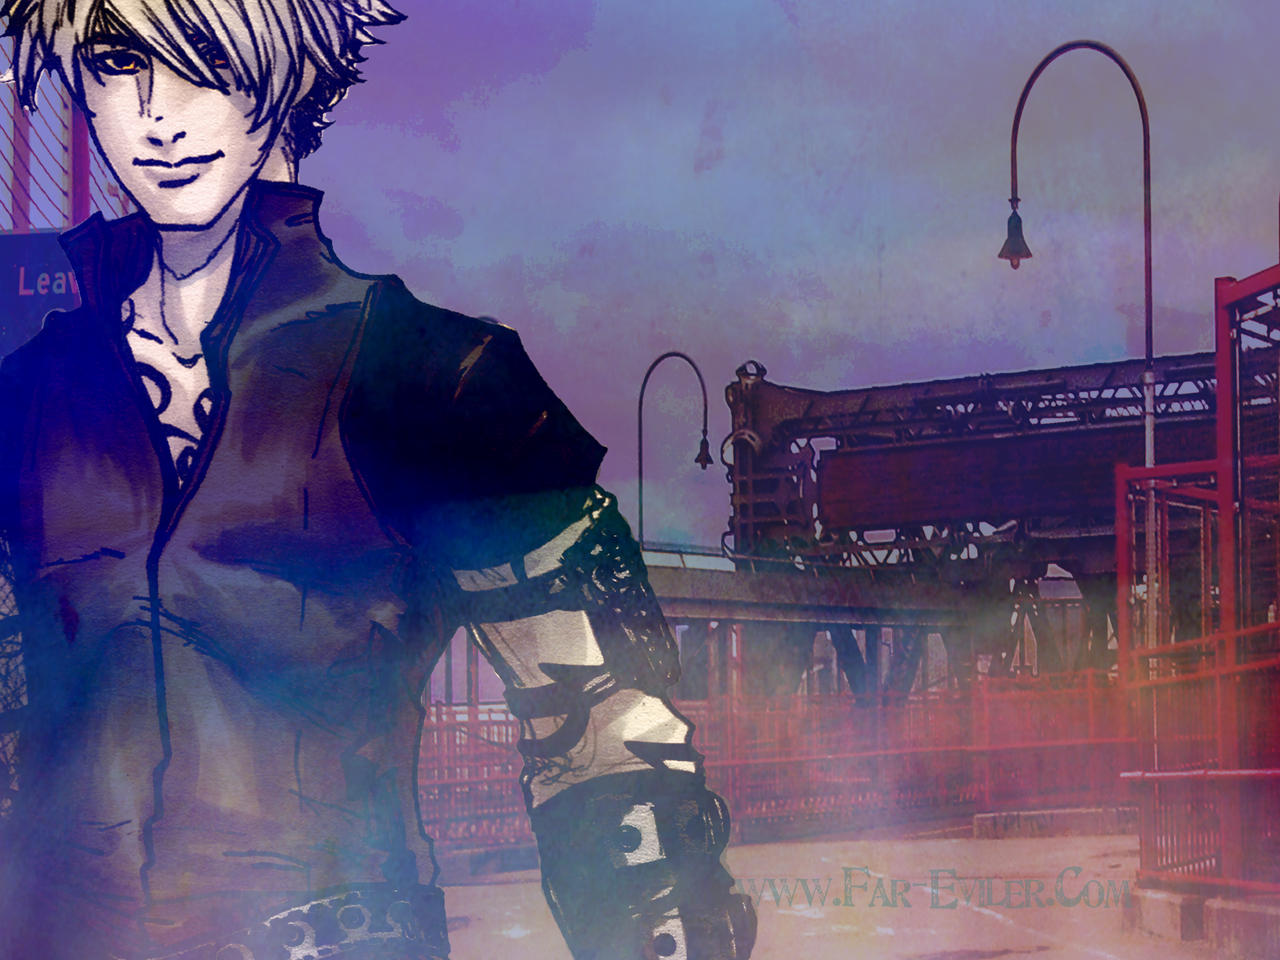 TMI - JACE-WALLPAPER by far-eviler